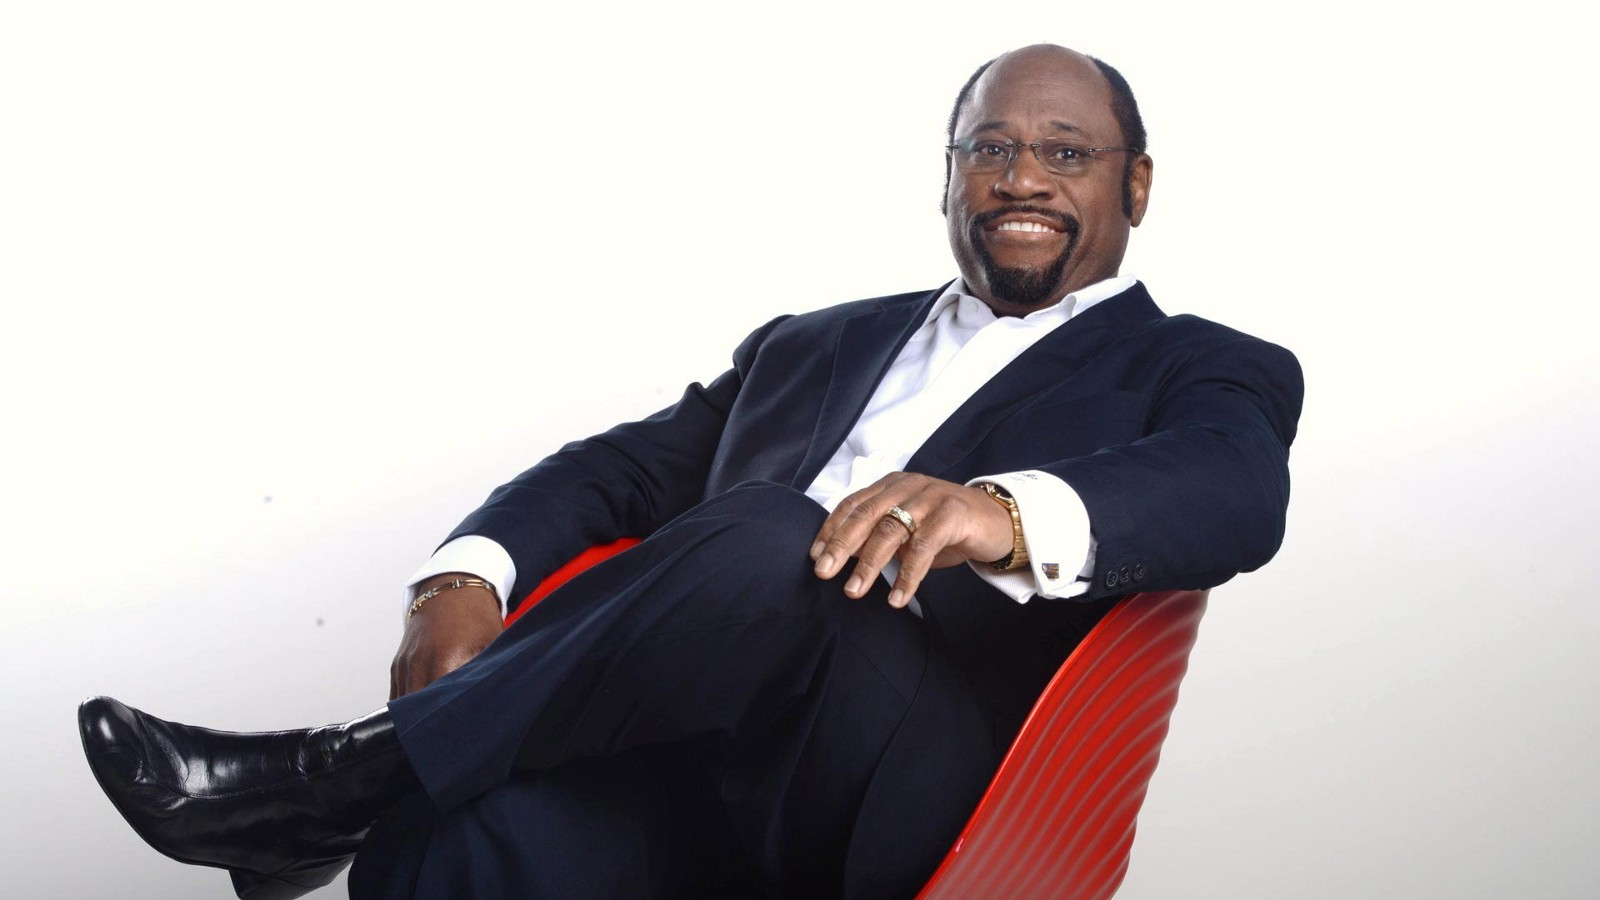 7 Inspirational Quotes On Purpose By Dr Myles Munroe